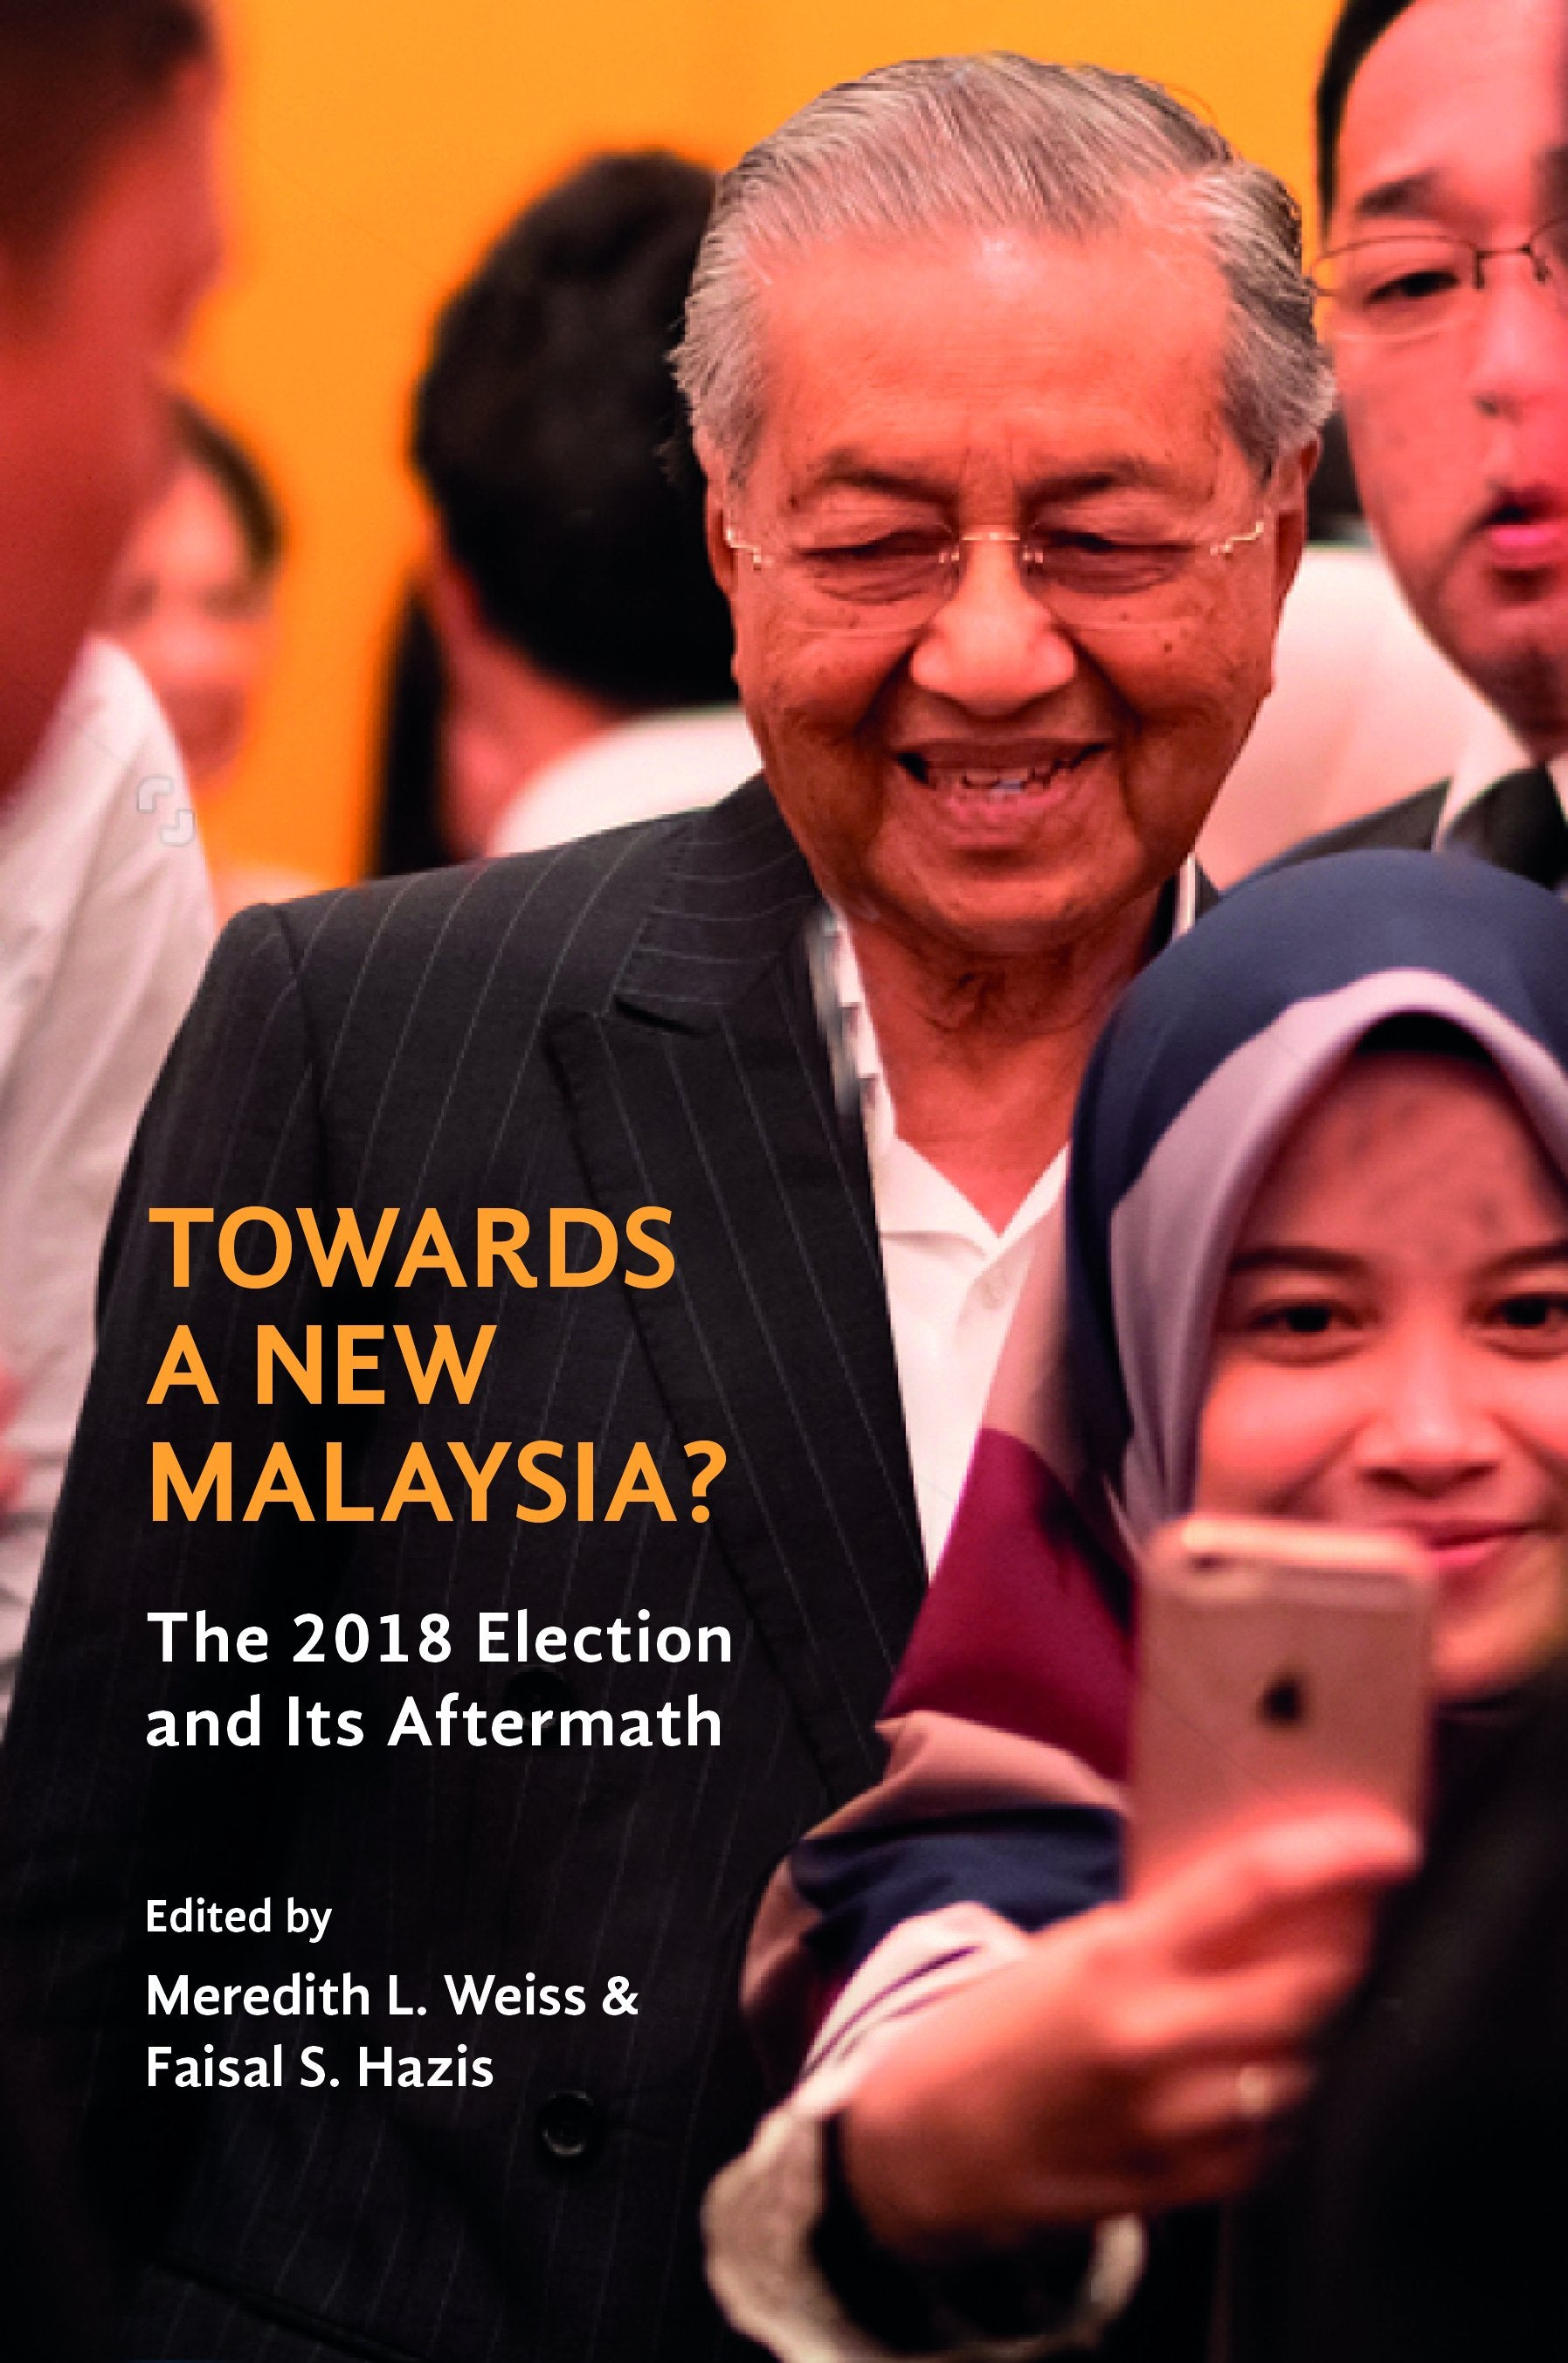 Towards A New Malaysia: the 2018 Election and its Aftermath